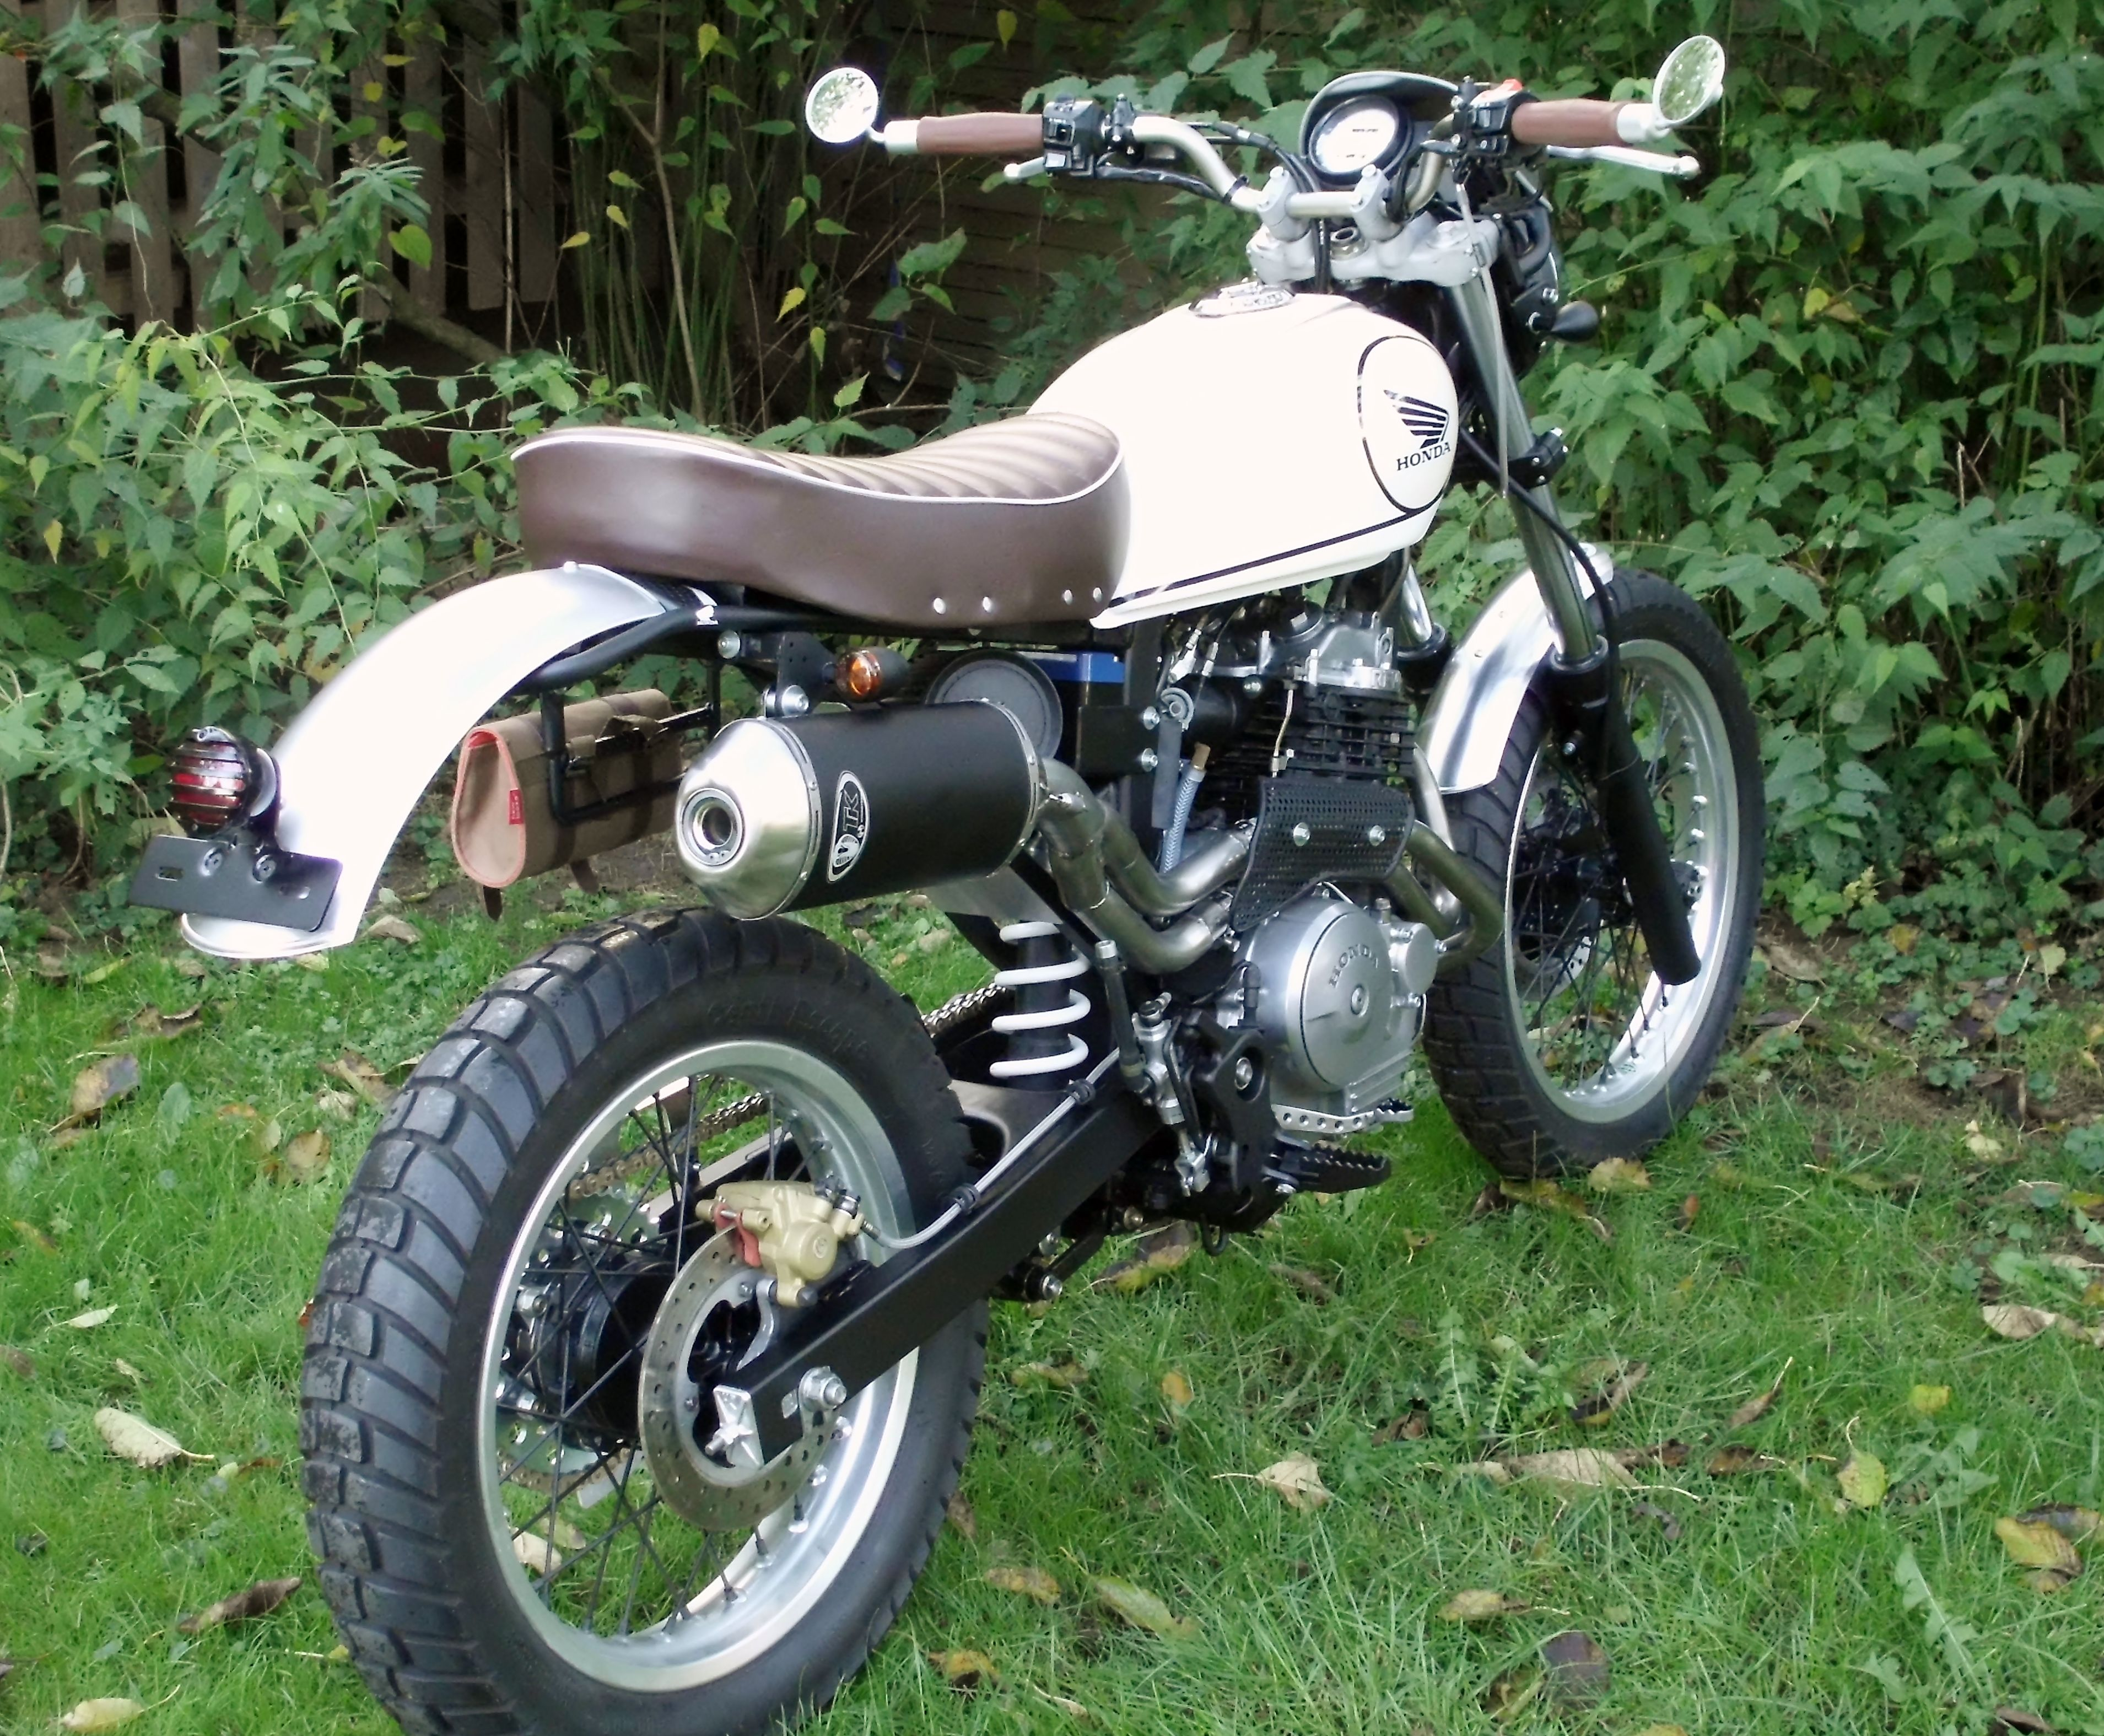 honda slr 650 scrambler honda slr 650 pinterest. Black Bedroom Furniture Sets. Home Design Ideas